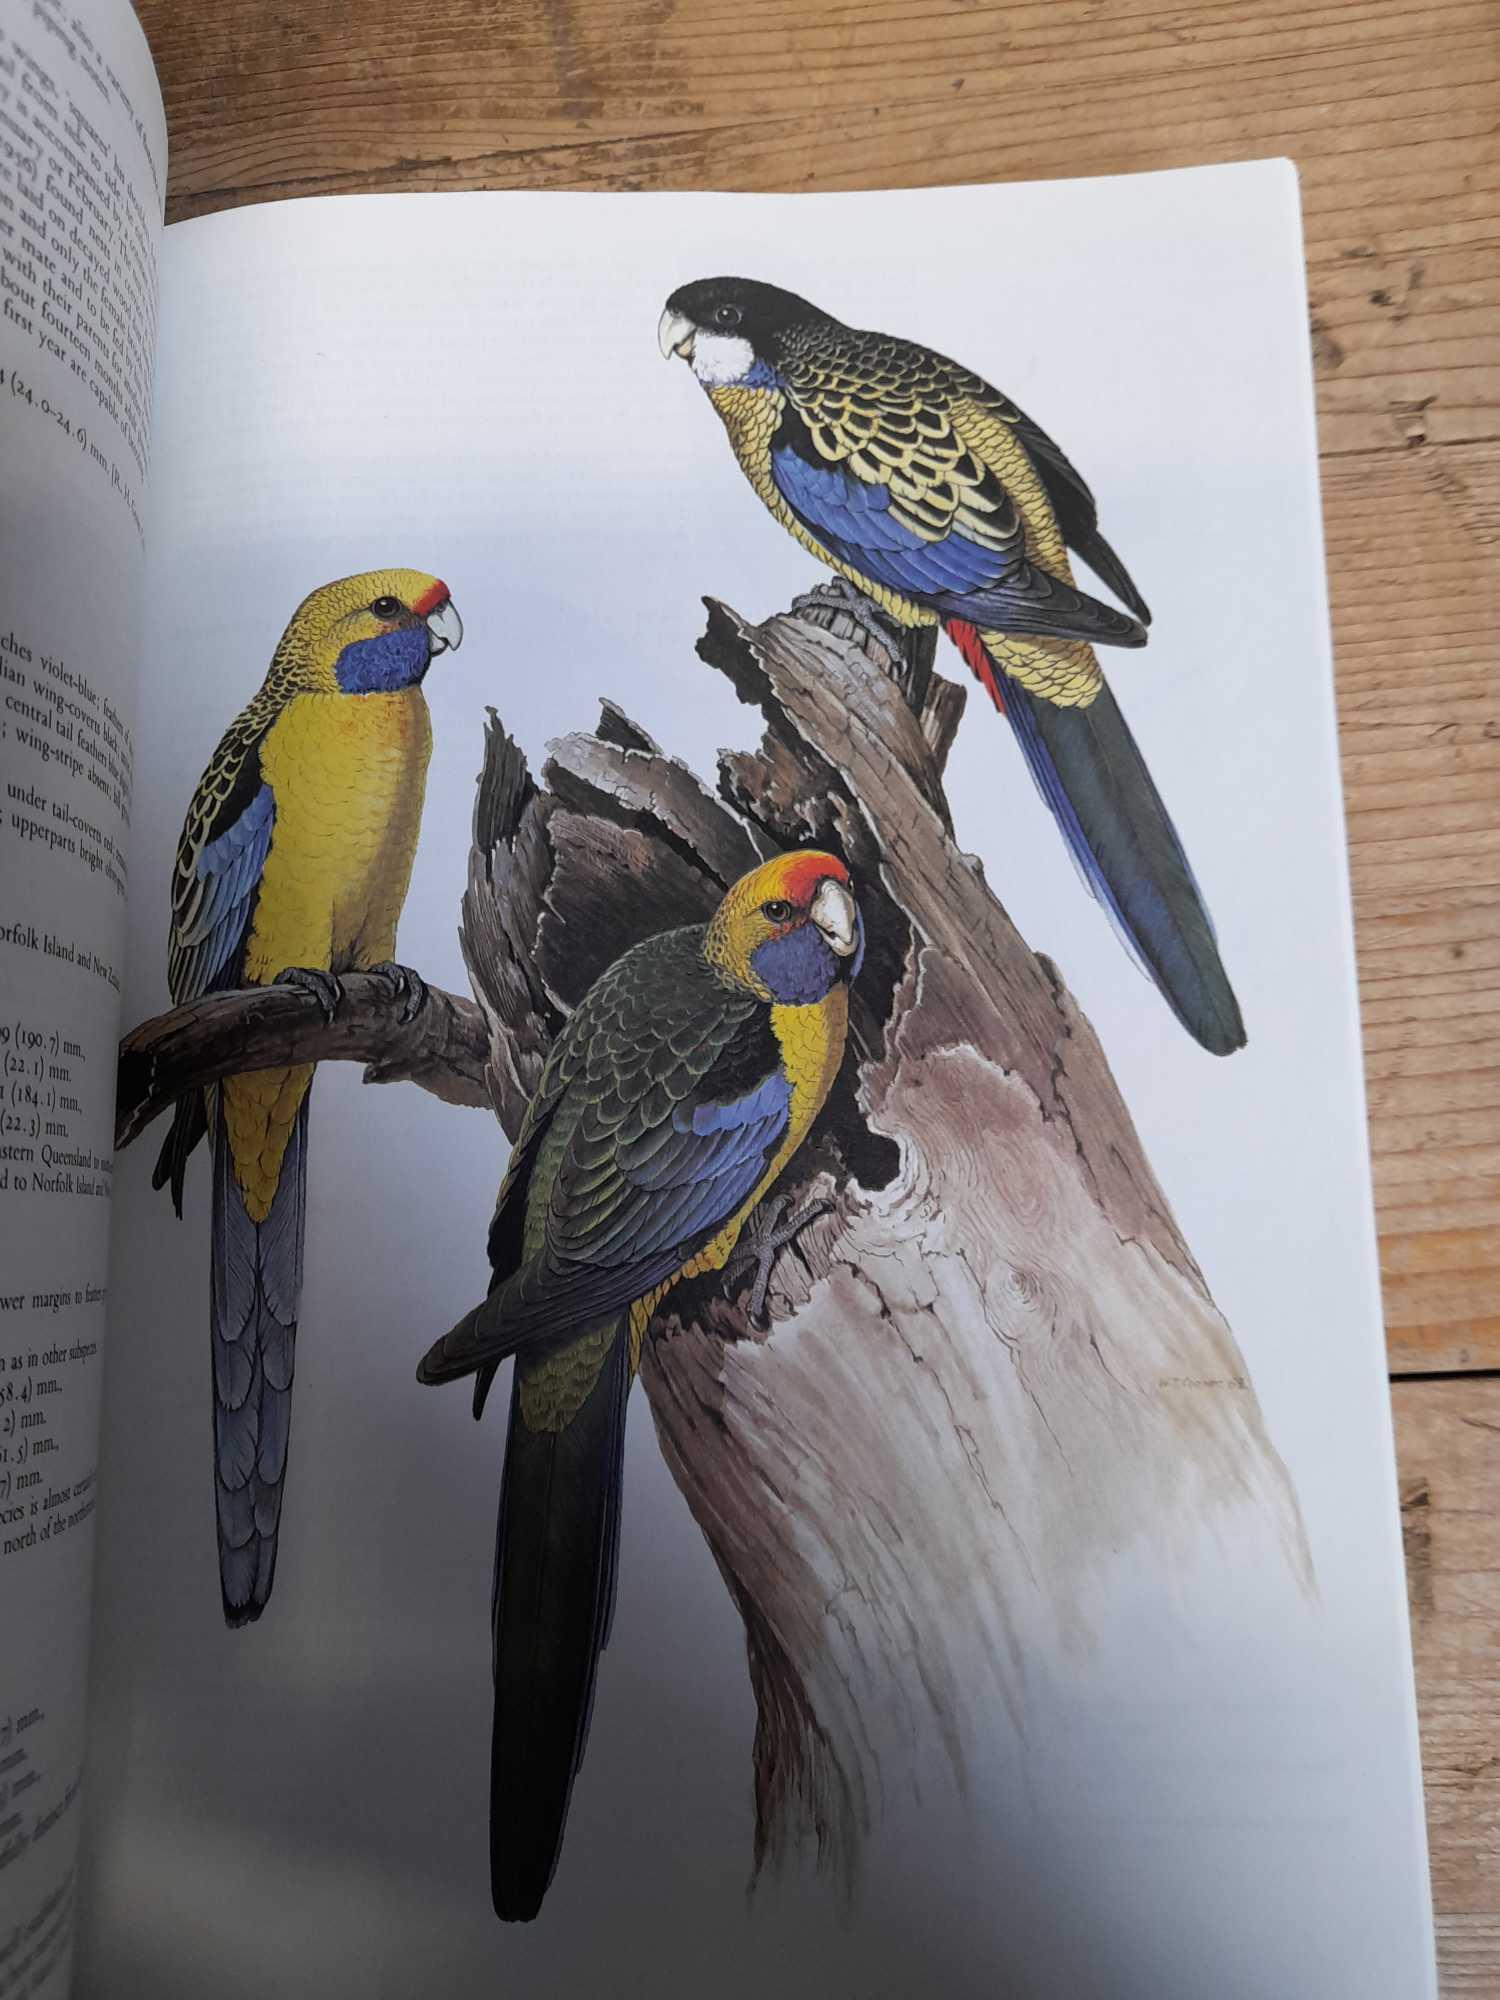 3 PARROT BOOKS - Image 10 of 20